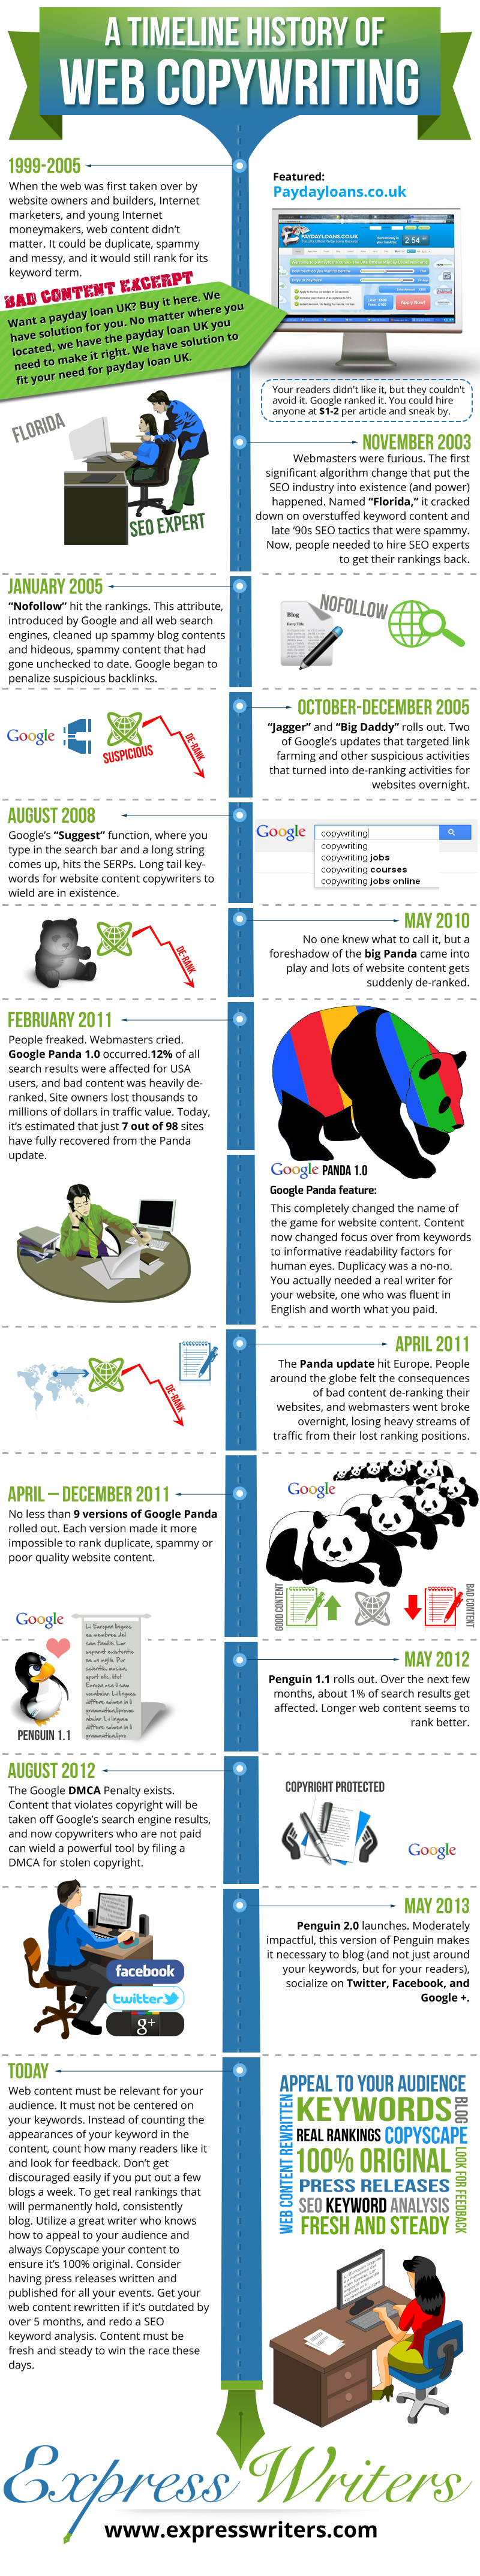 a-timeline-history-of-seo-and-web-copywriting_525e391f5492d